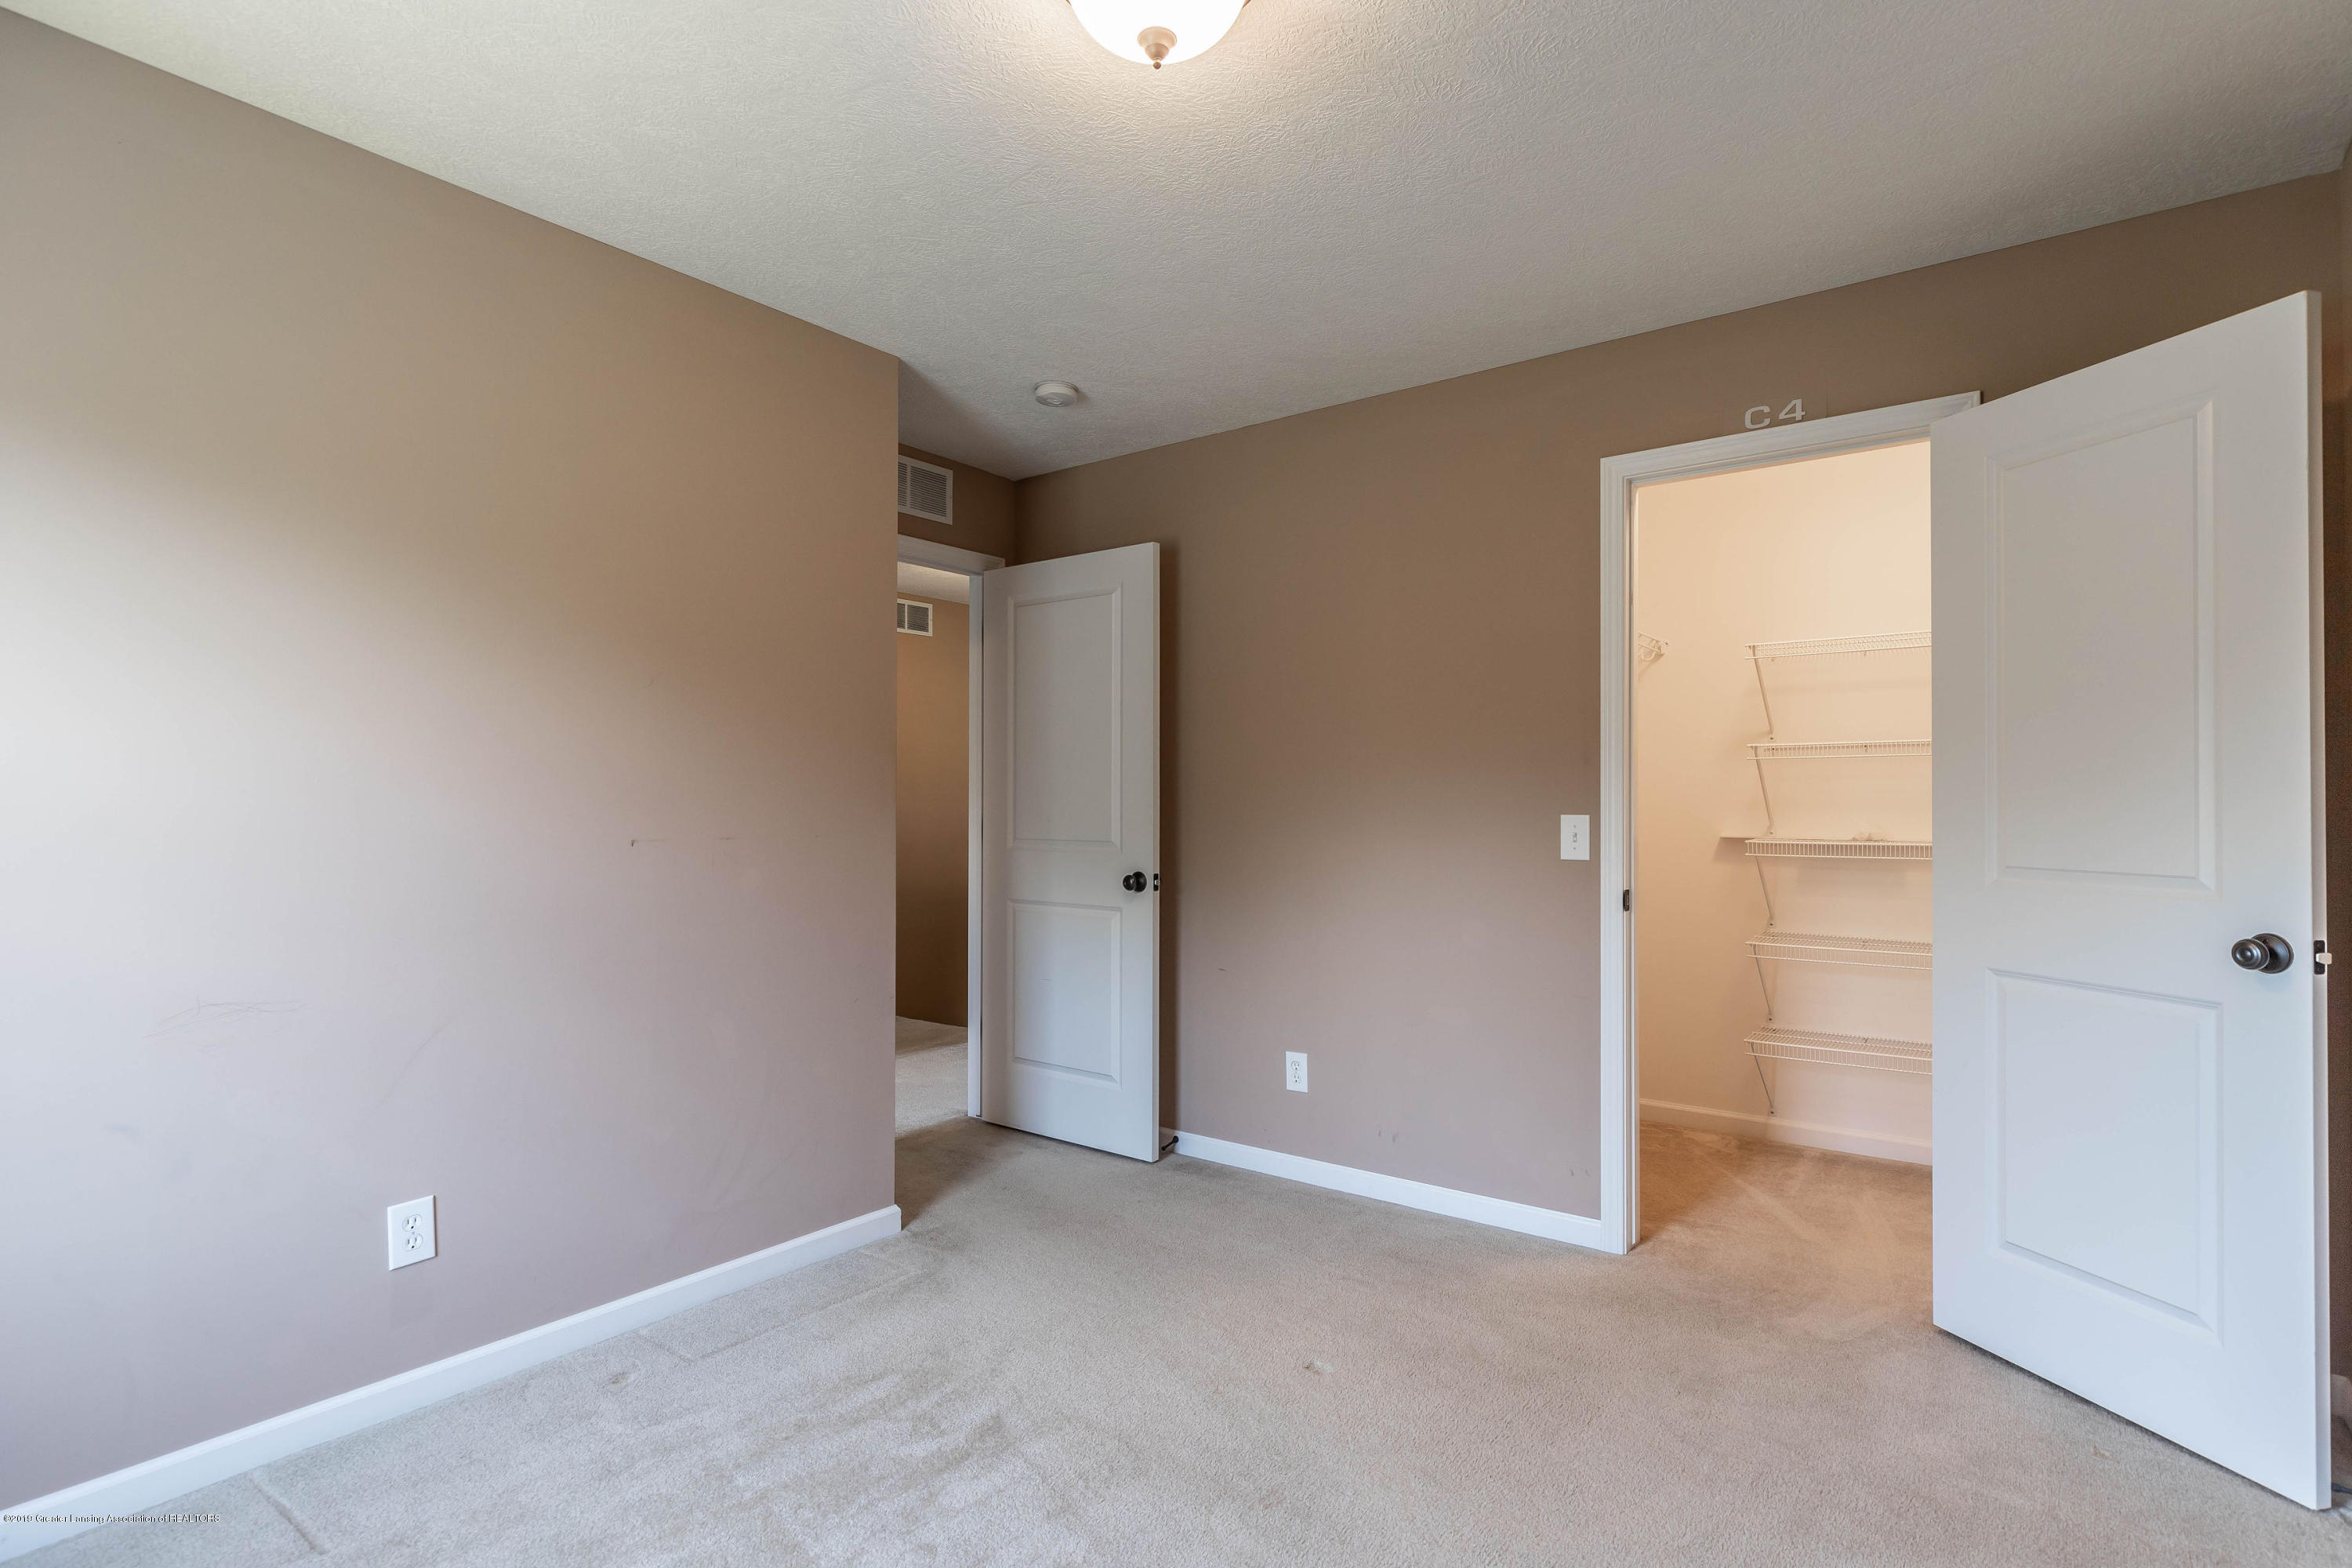 15125 Loxley Ln - loxleybed21(1of1) - 18